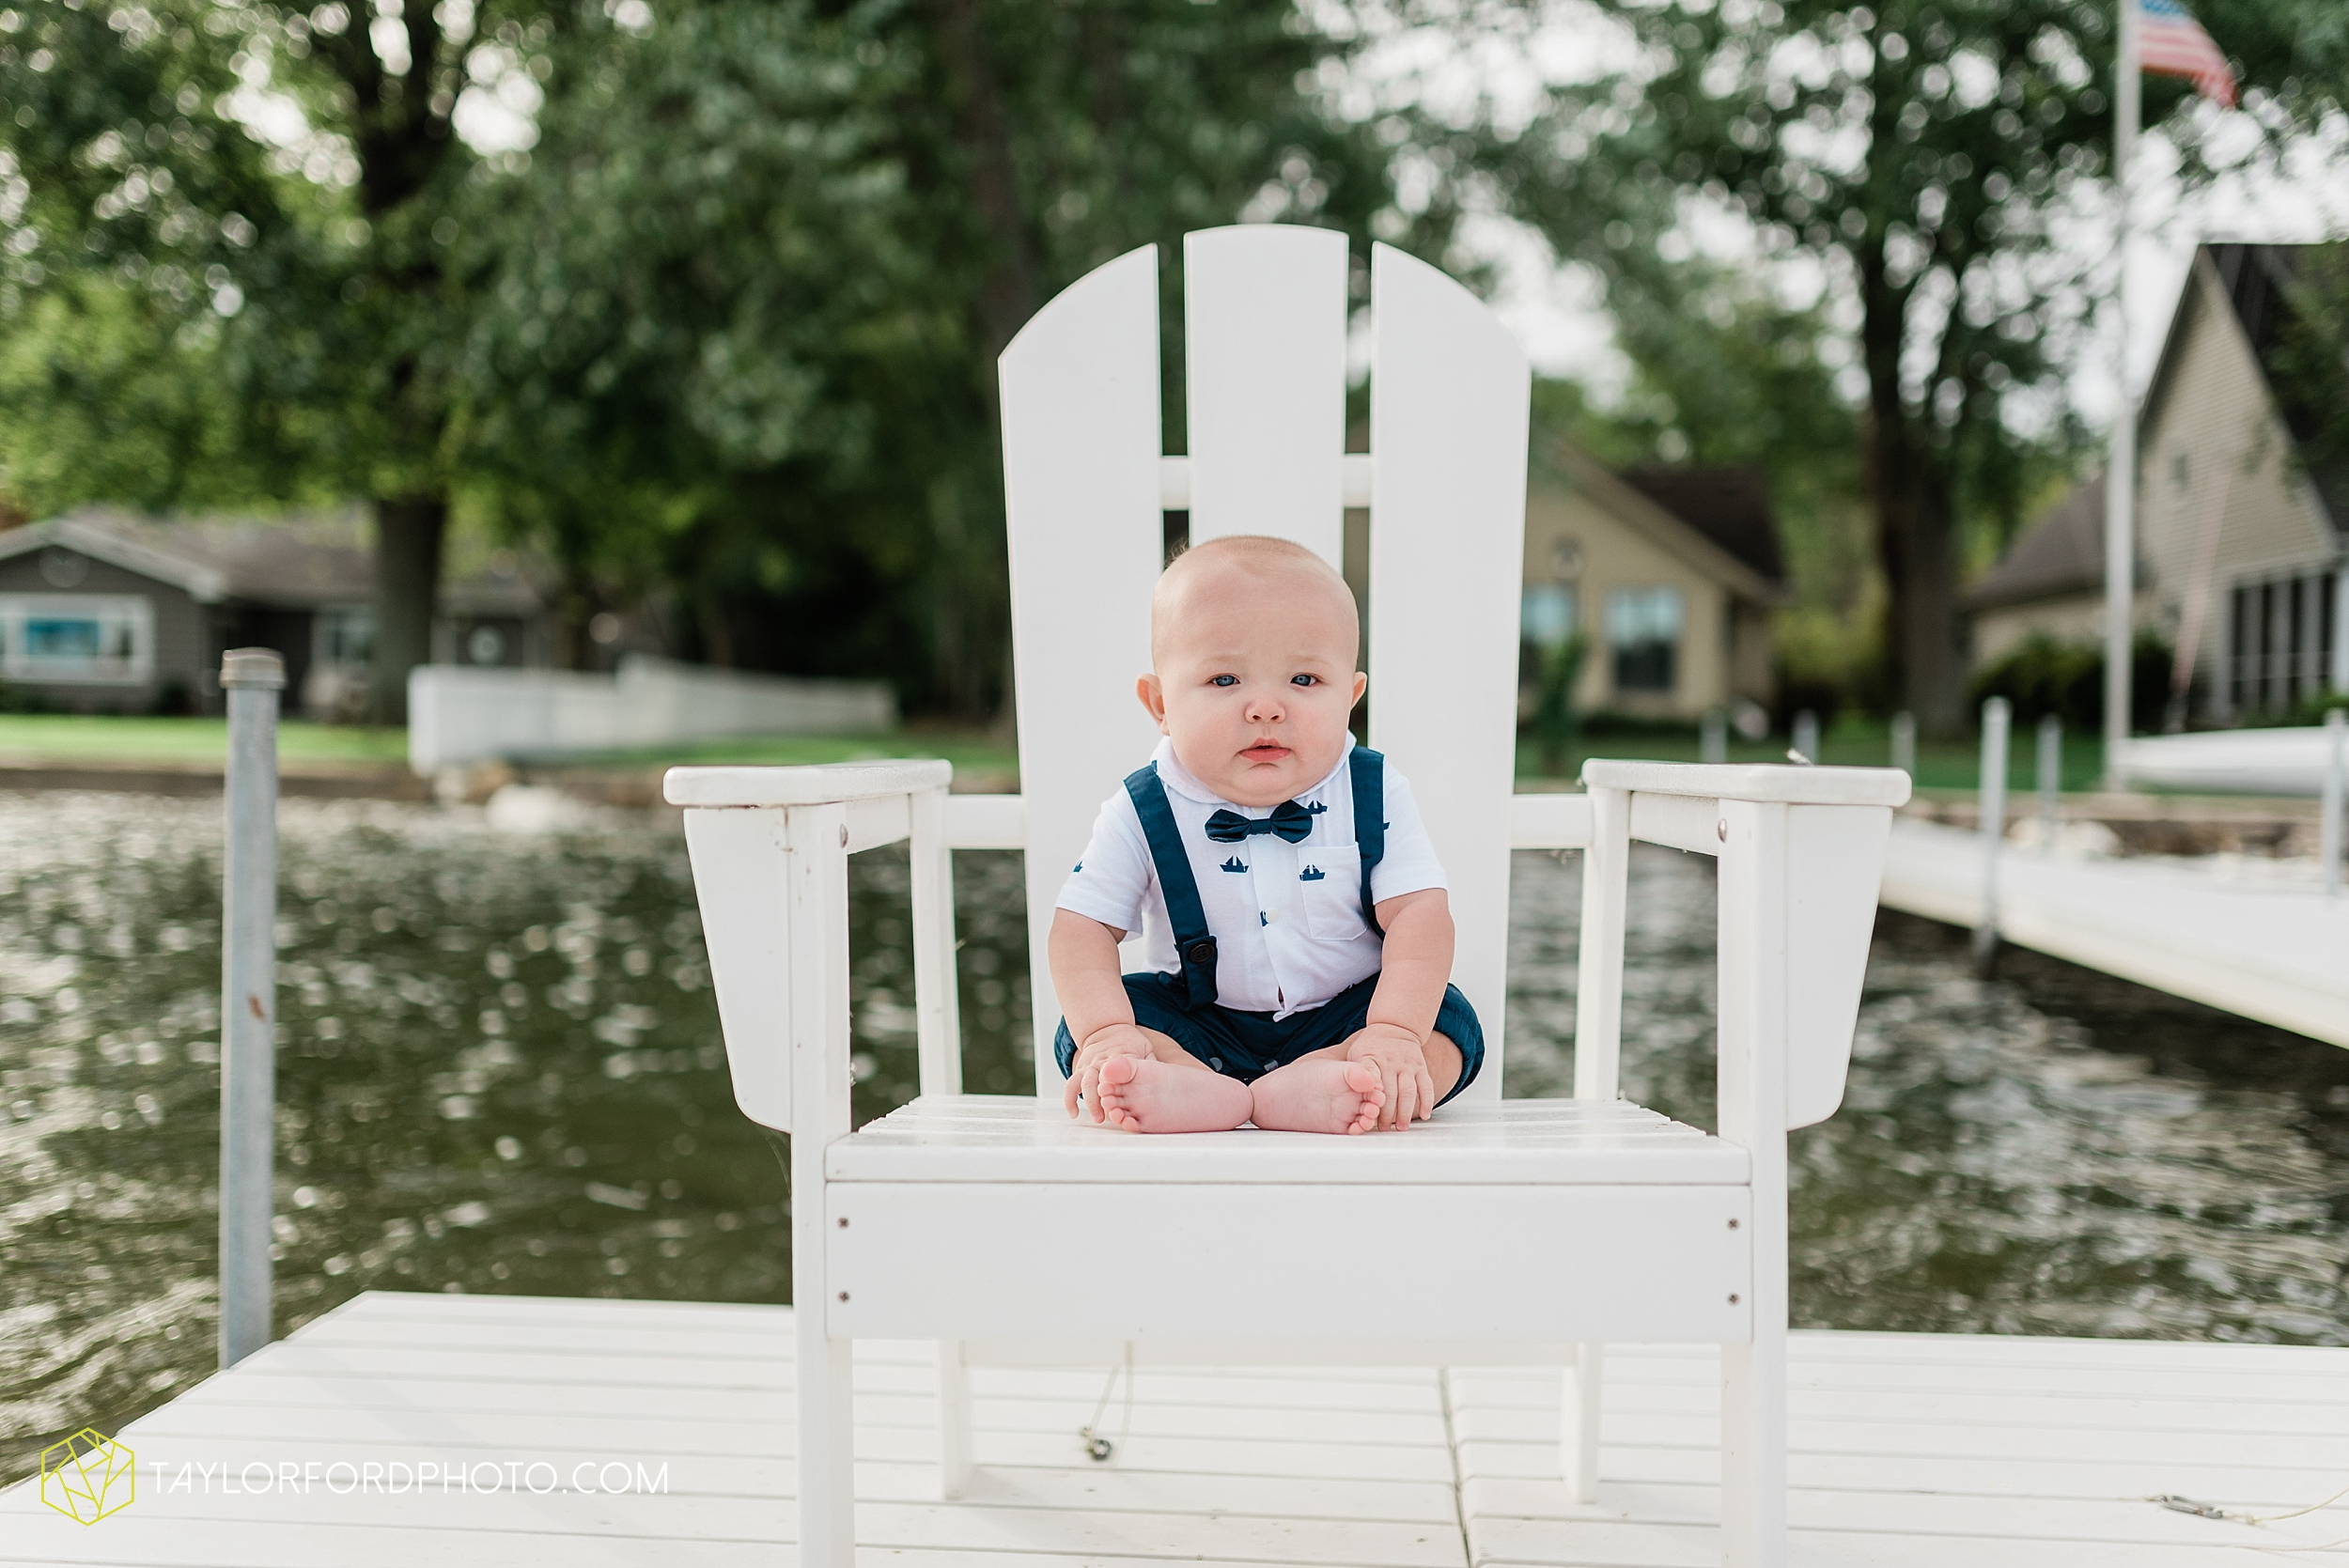 lake-wawasee-conklin-bay-lifestyle-family-september-late-fall-photographer-taylor-ford-photography_0599.jpg